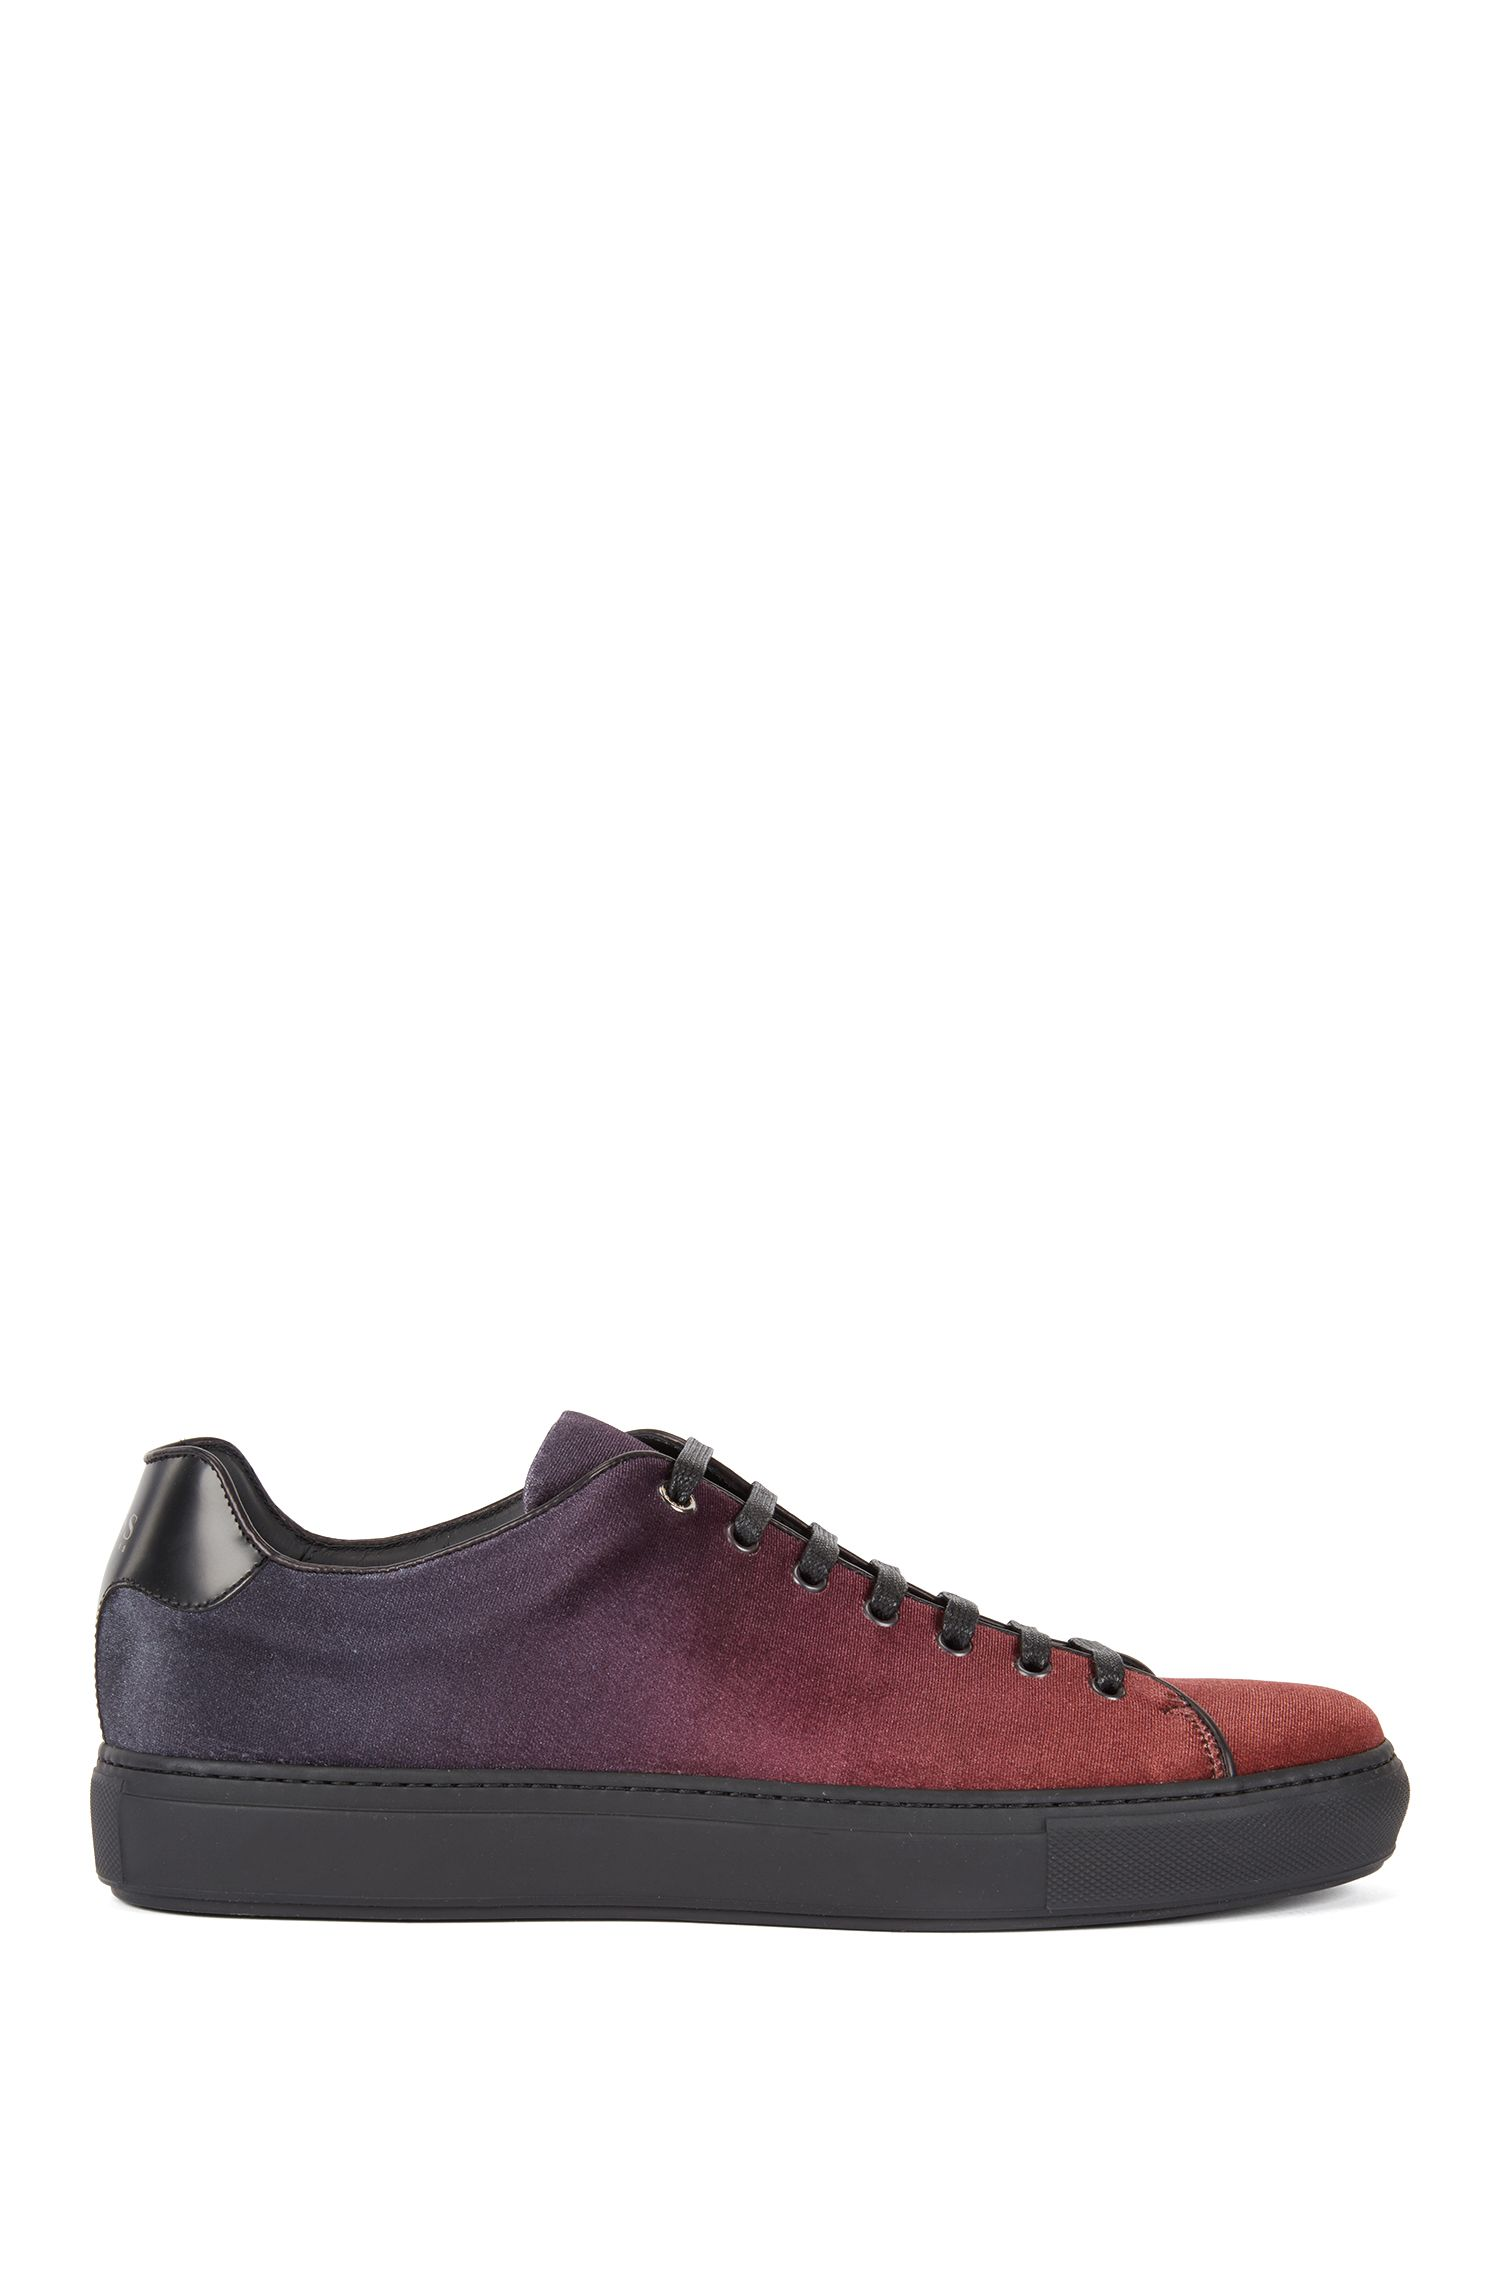 Tennis-inspired sneakers in dégradé Italian velvet, Red